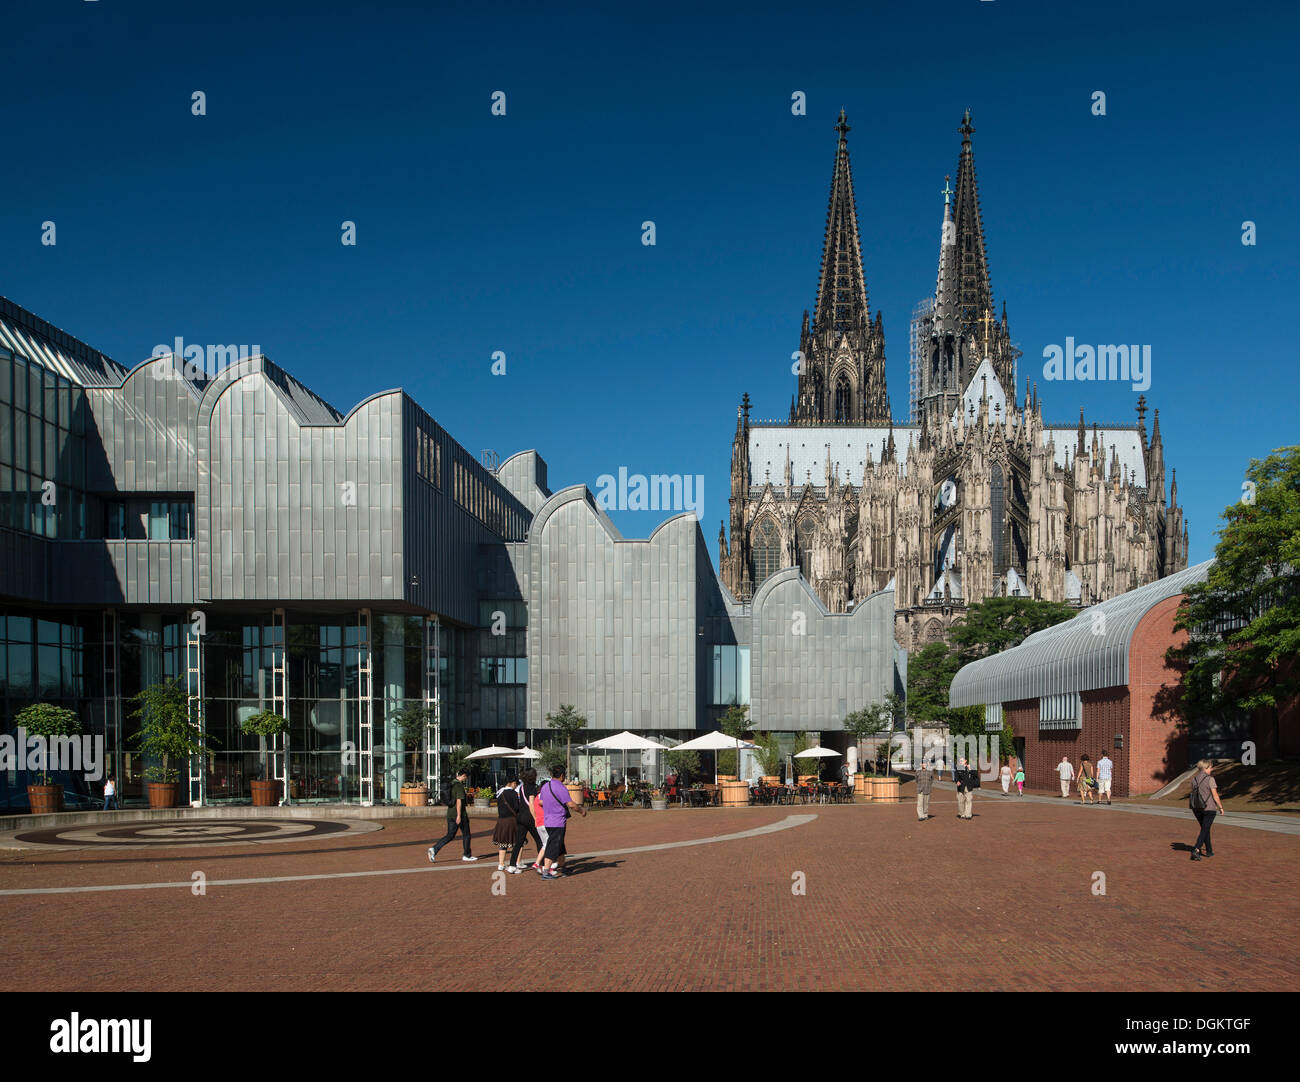 View of the Ludwig Museum and Cologne Cathedral as seen from Heinrich-Boell-Platz square, tourists walking in the foreground - Stock Image